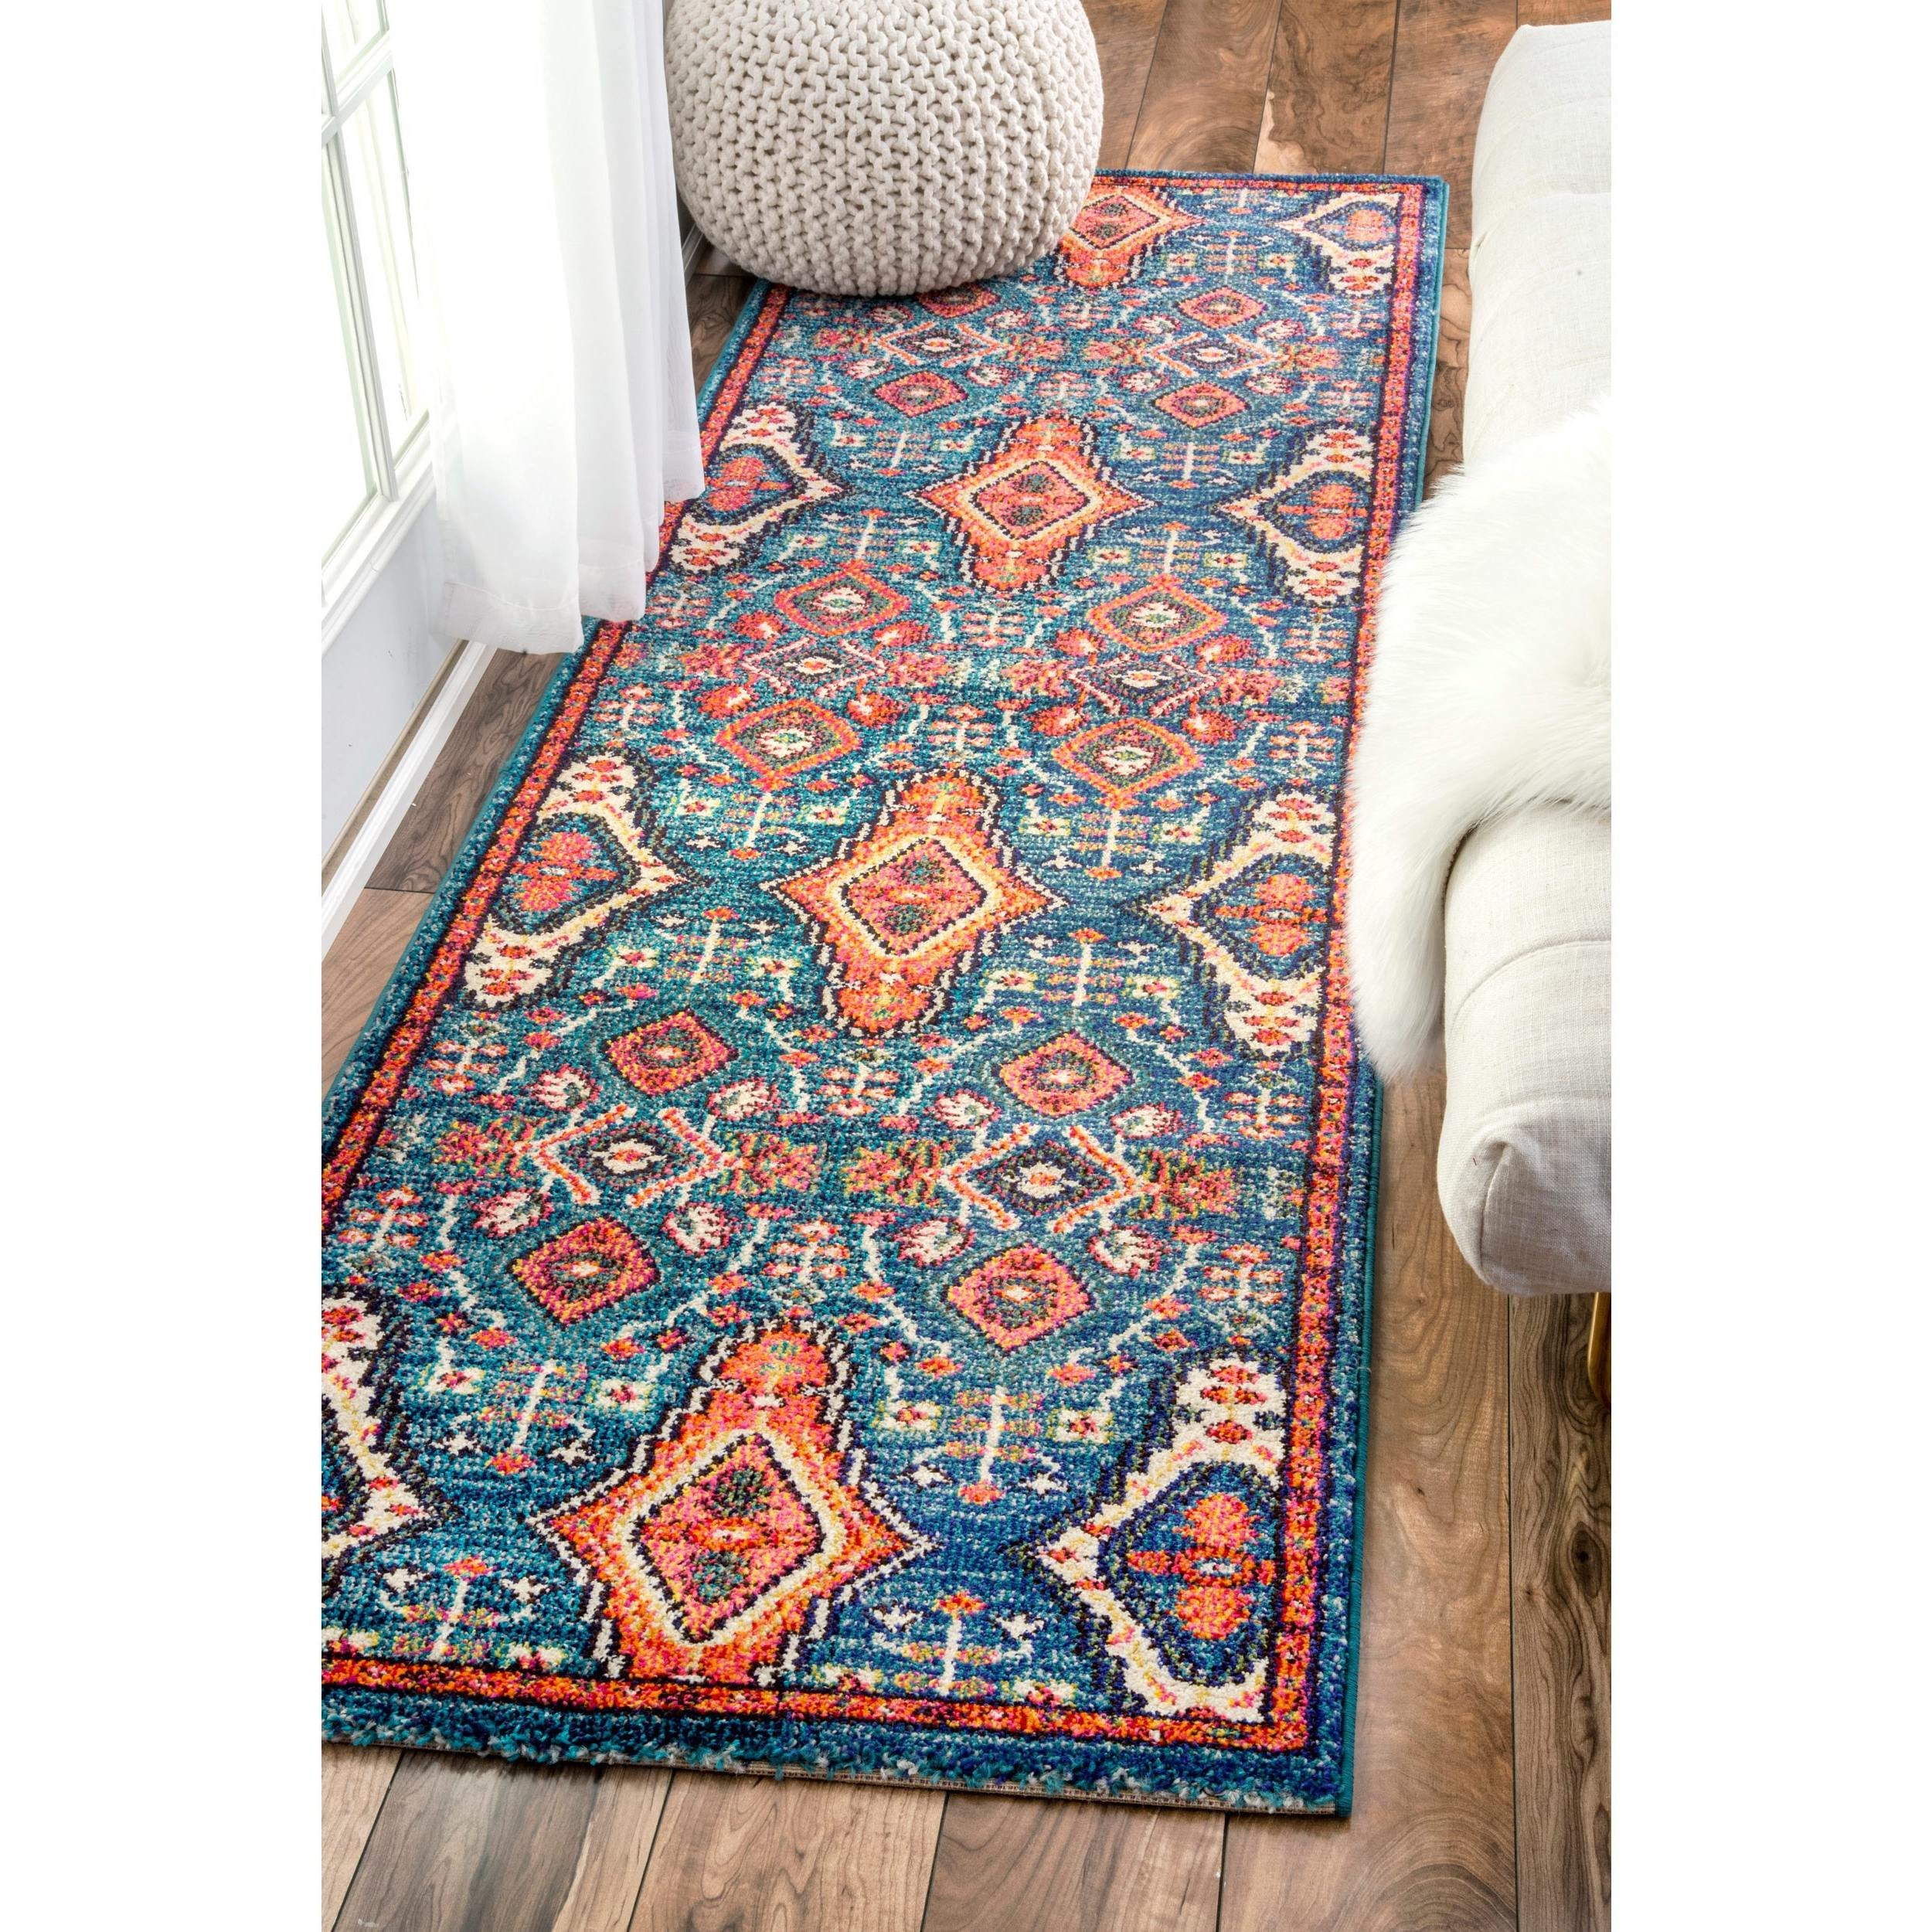 un 2'6 x 8' Traditional Ornamental Diamonds Multi Color Runner Rug, Polypropylene Oriental Country Floral Flower Pattern Rectangle Soft Plush Pretty Indoor Living Room Entrance Way Accent Carpet